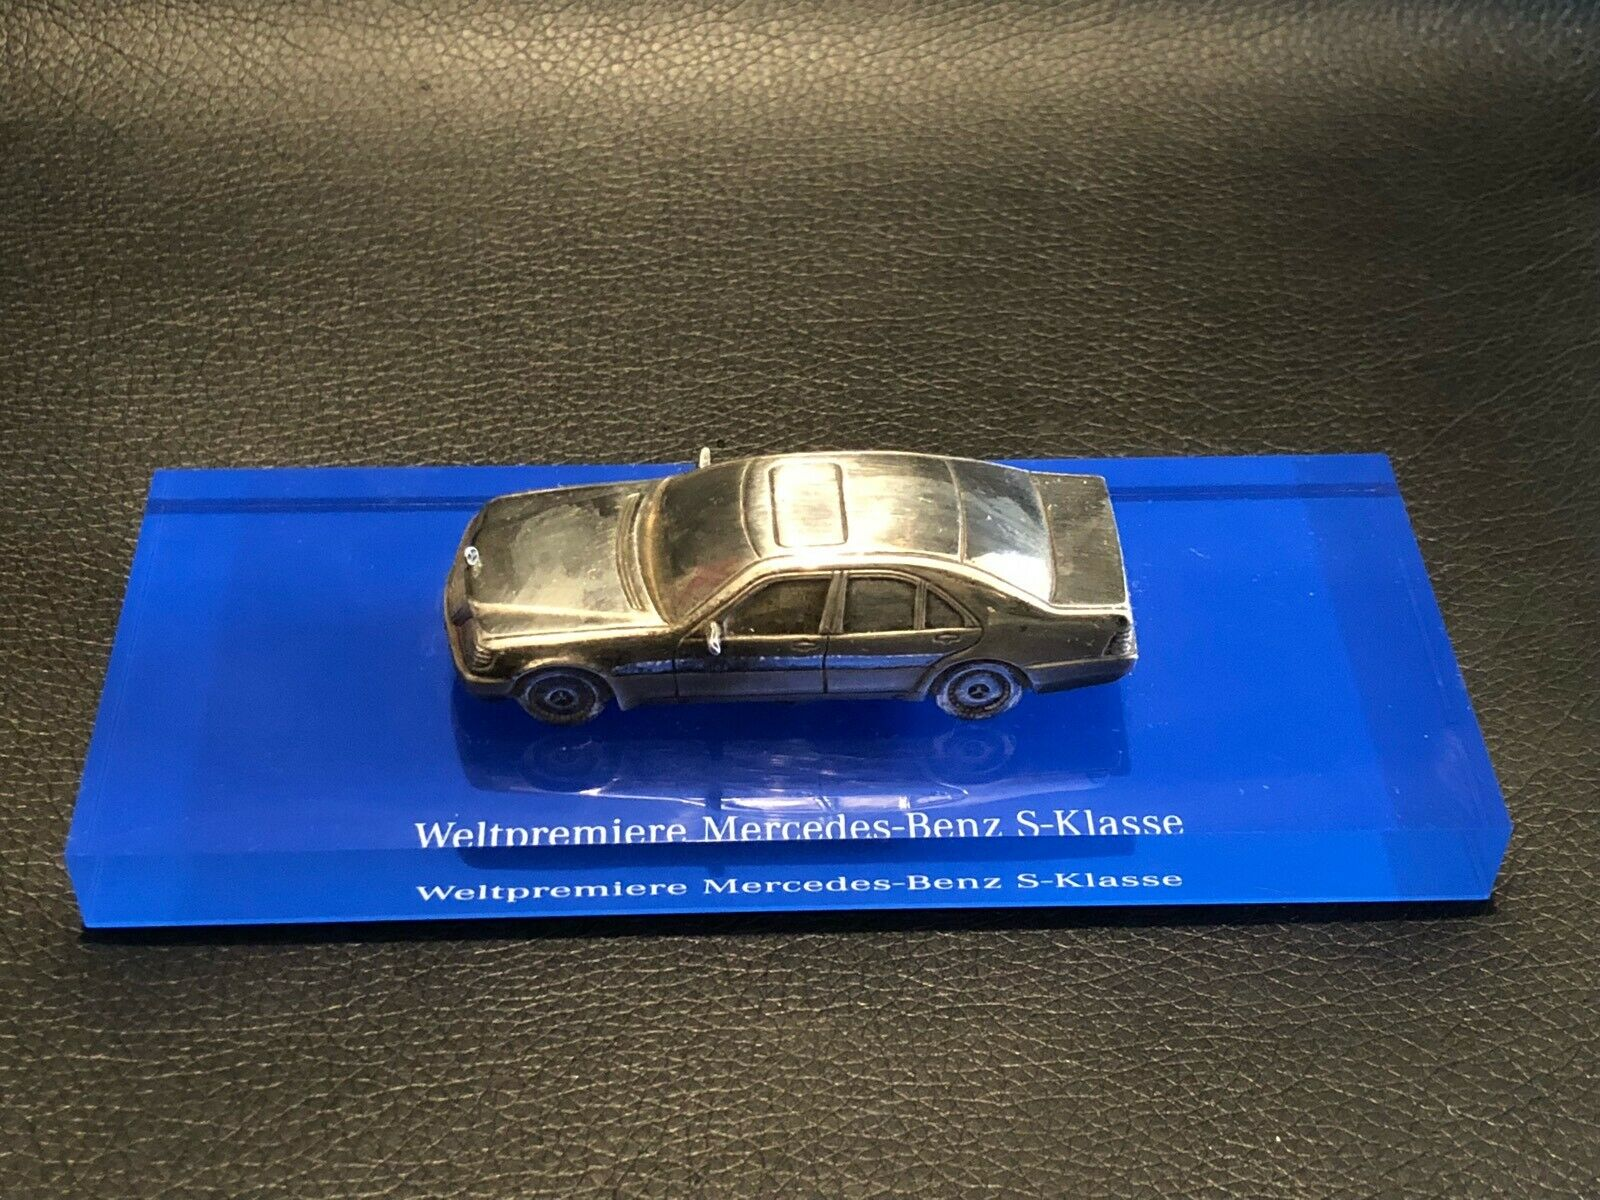 1 64 circa Weltepremiere MERCEDES BENZ S Class Promotional Metal Model no 1 43 2